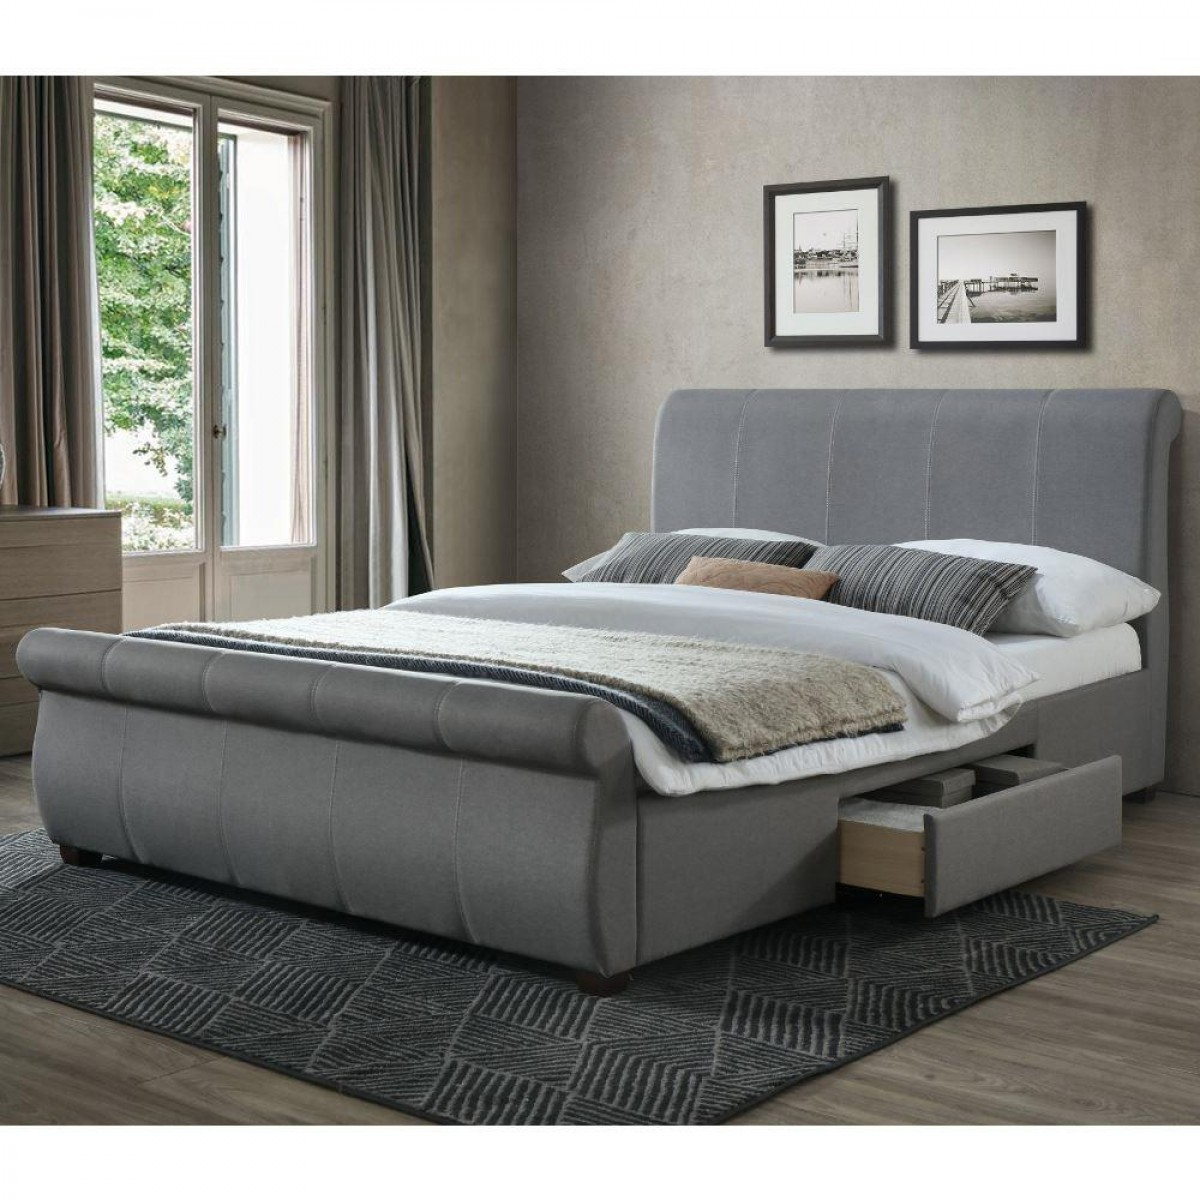 Lancaster Grey Fabric 2 Drawer Storage Bed